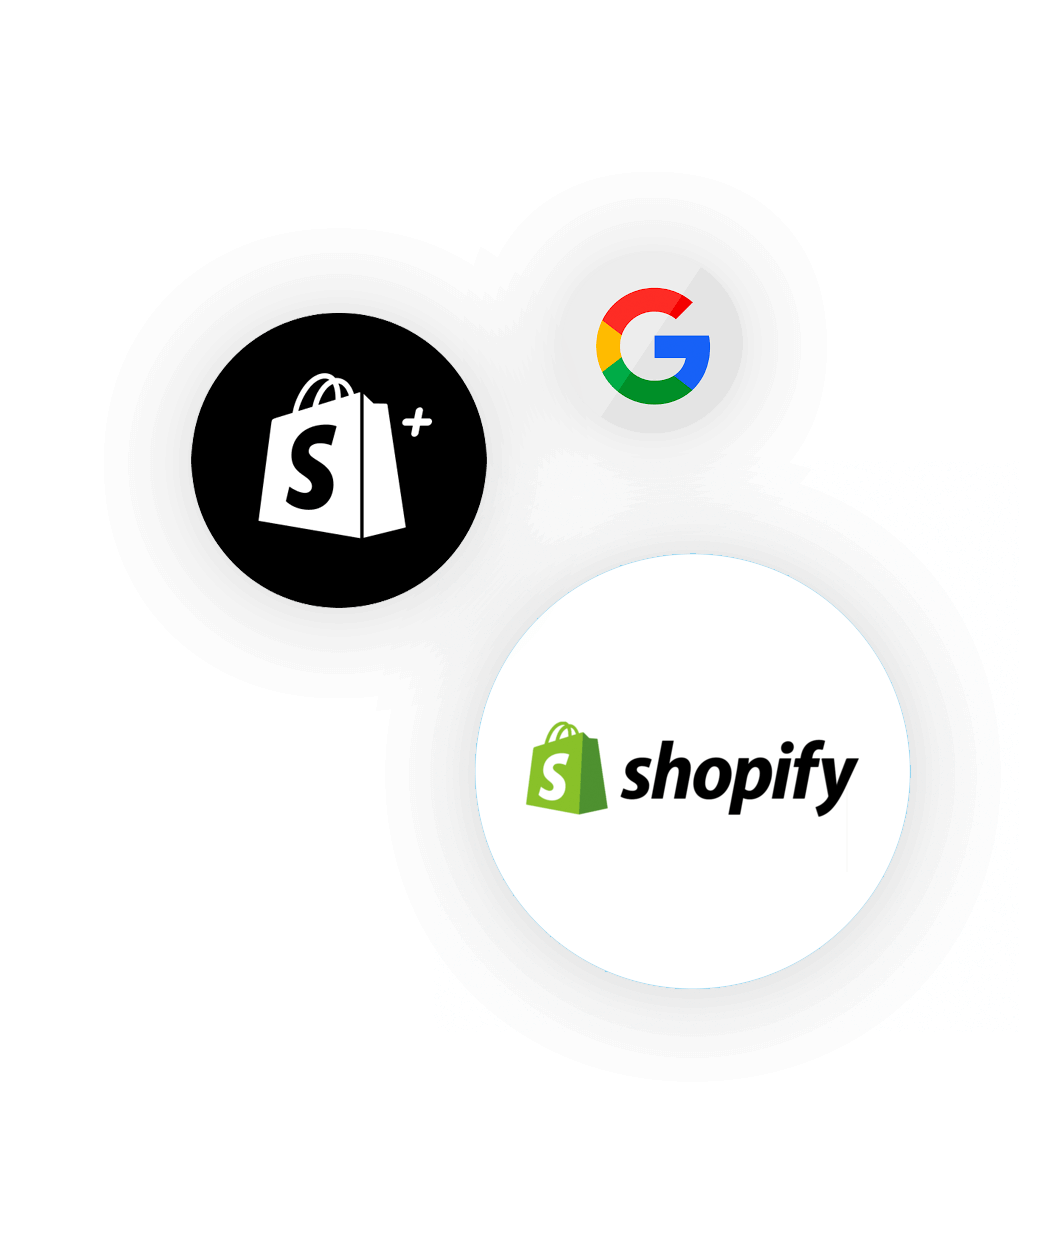 shopify designers and developers